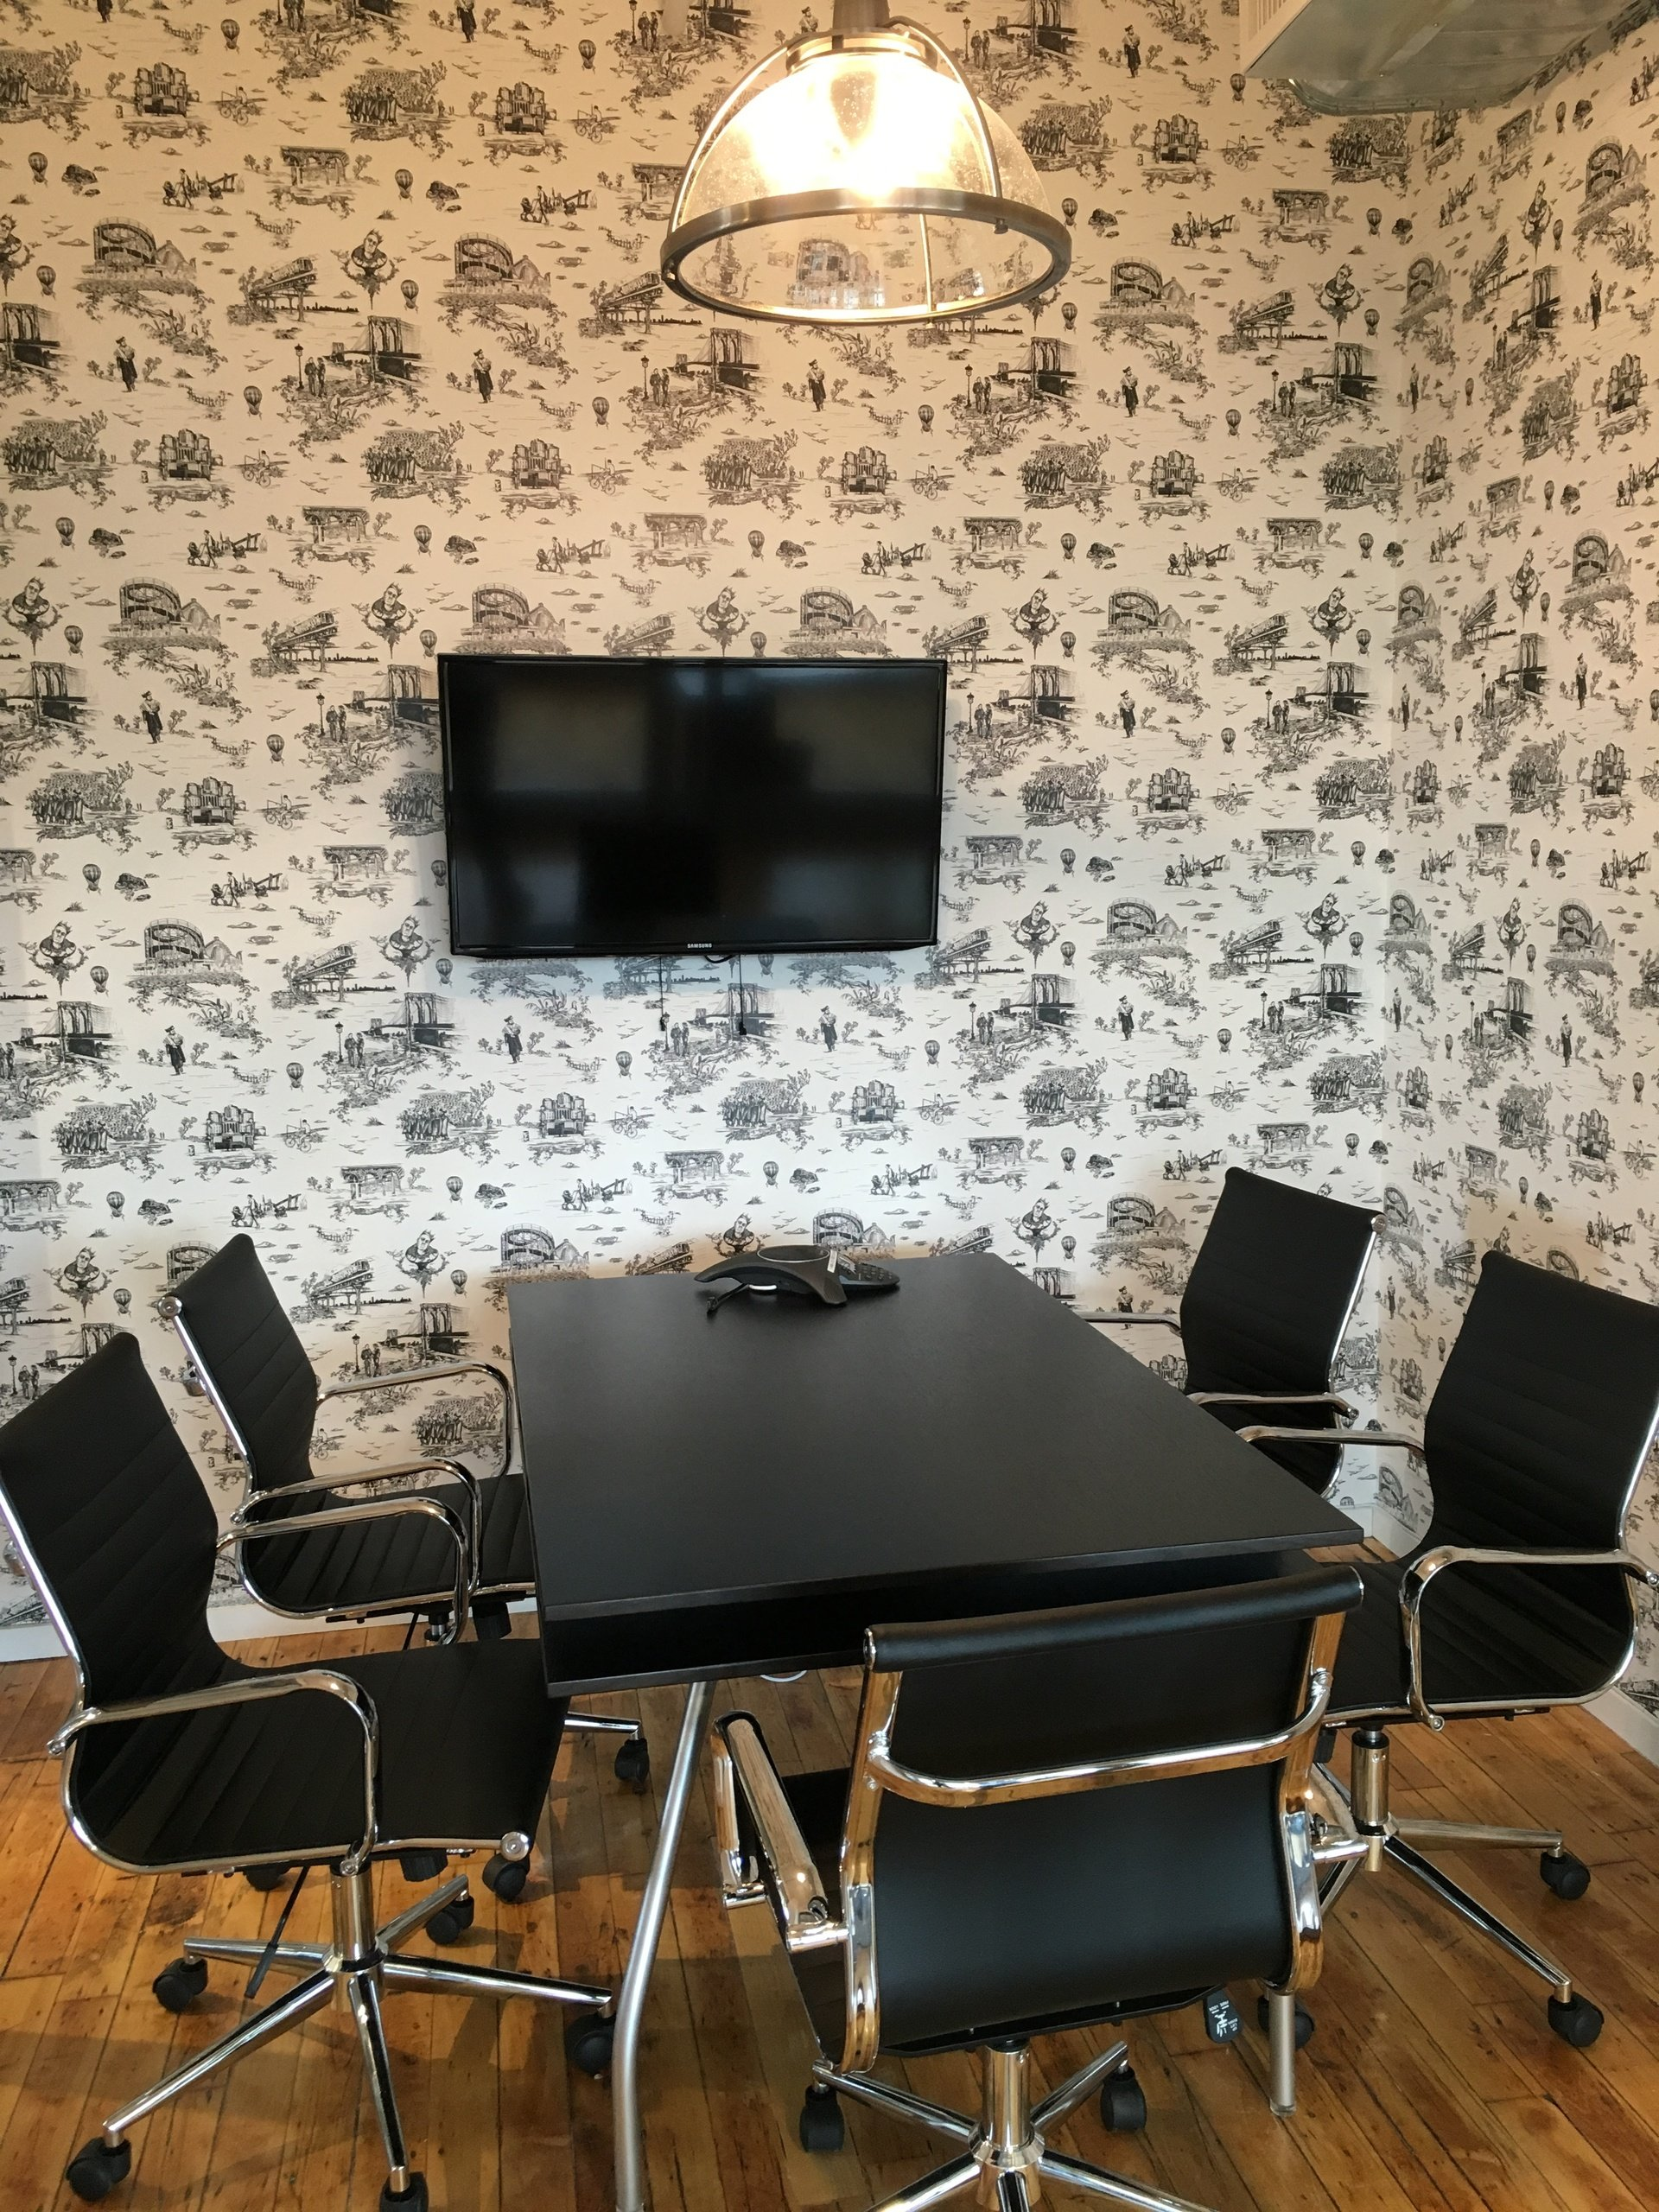 NYC conference rooms Coworking space PencilWorks - Grey Room image 0